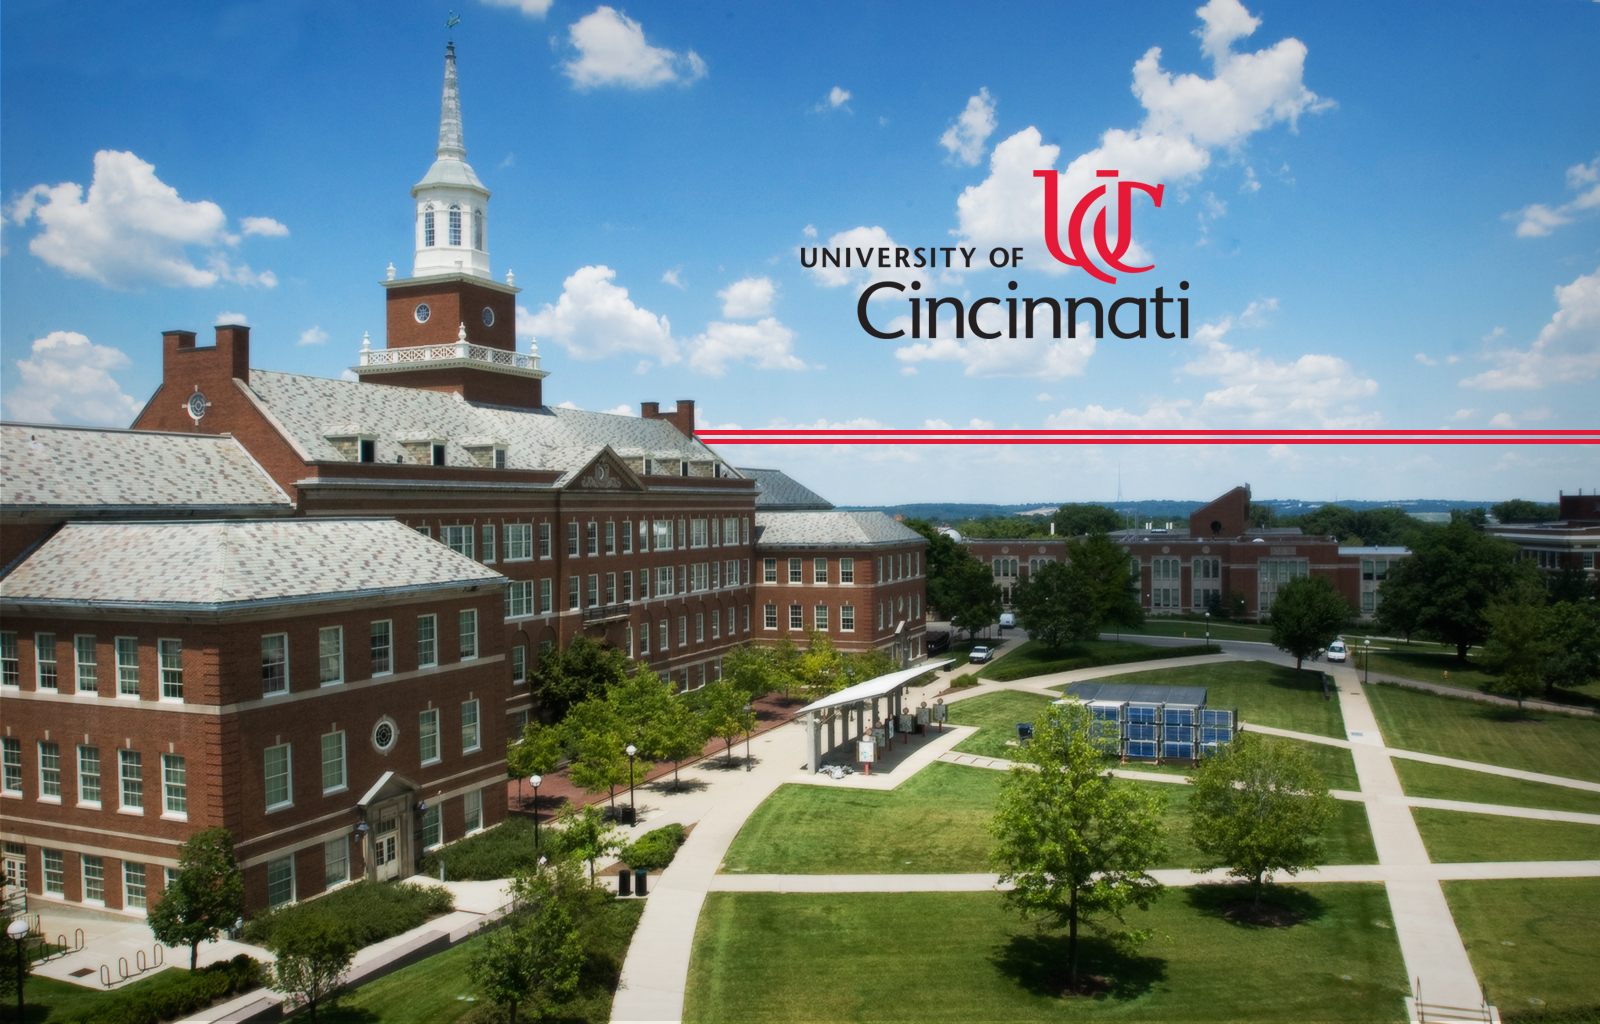 University Of Cincinnati Classroom Design Guide : Reasons to skip class at university of cincinnati